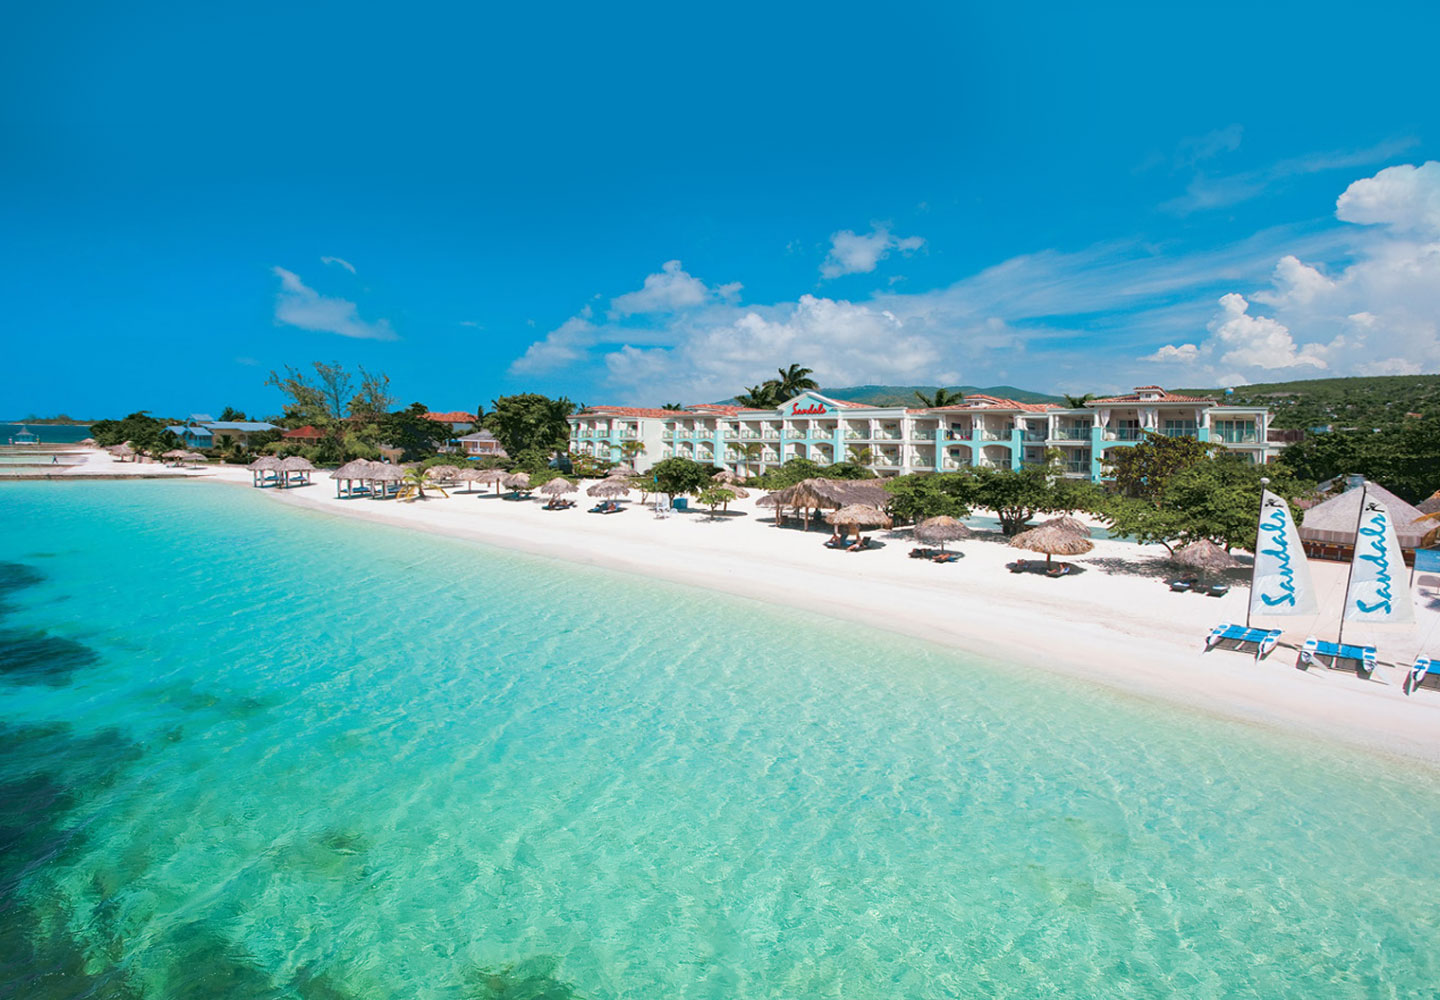 Sandals Montego Bay Introduces New Renovations  Travel